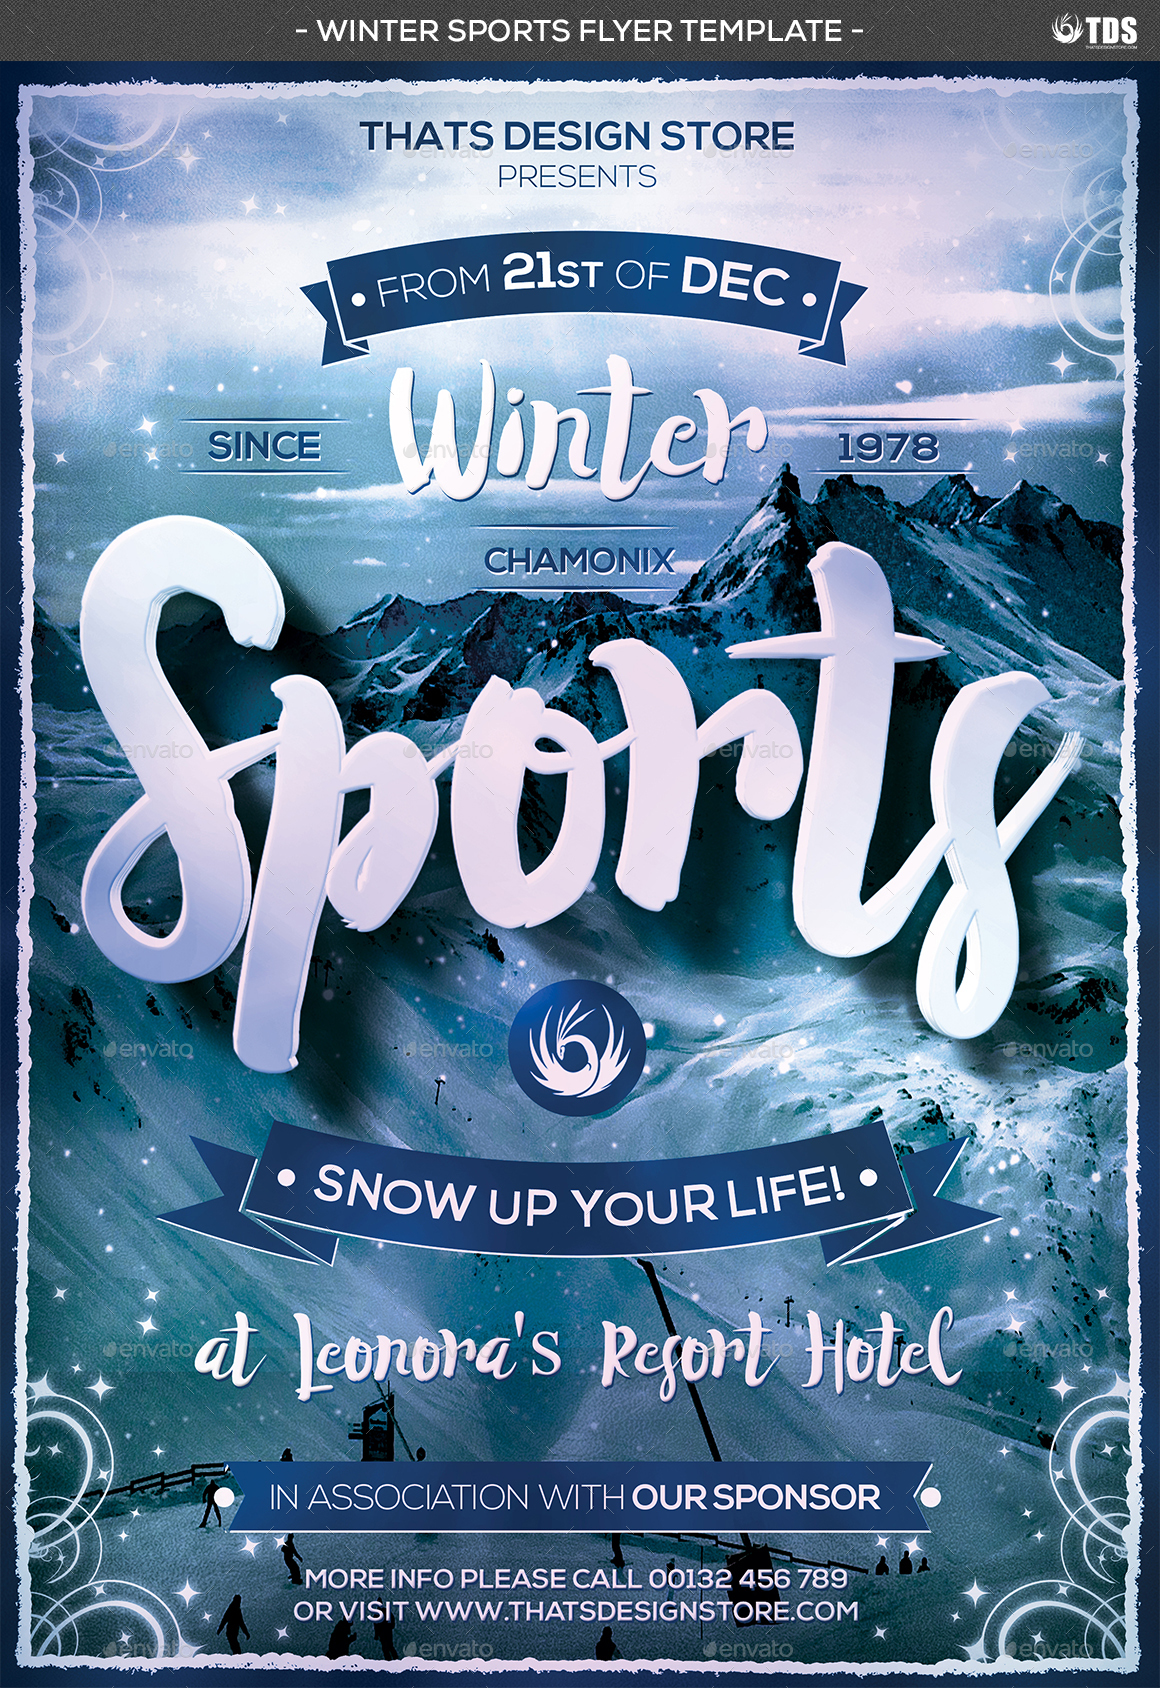 winter sports flyer template by thatsdesign graphicriver 01 winter sports flyer template jpg 02 winter sports flyer template jpg 03 winter sports flyer template jpg